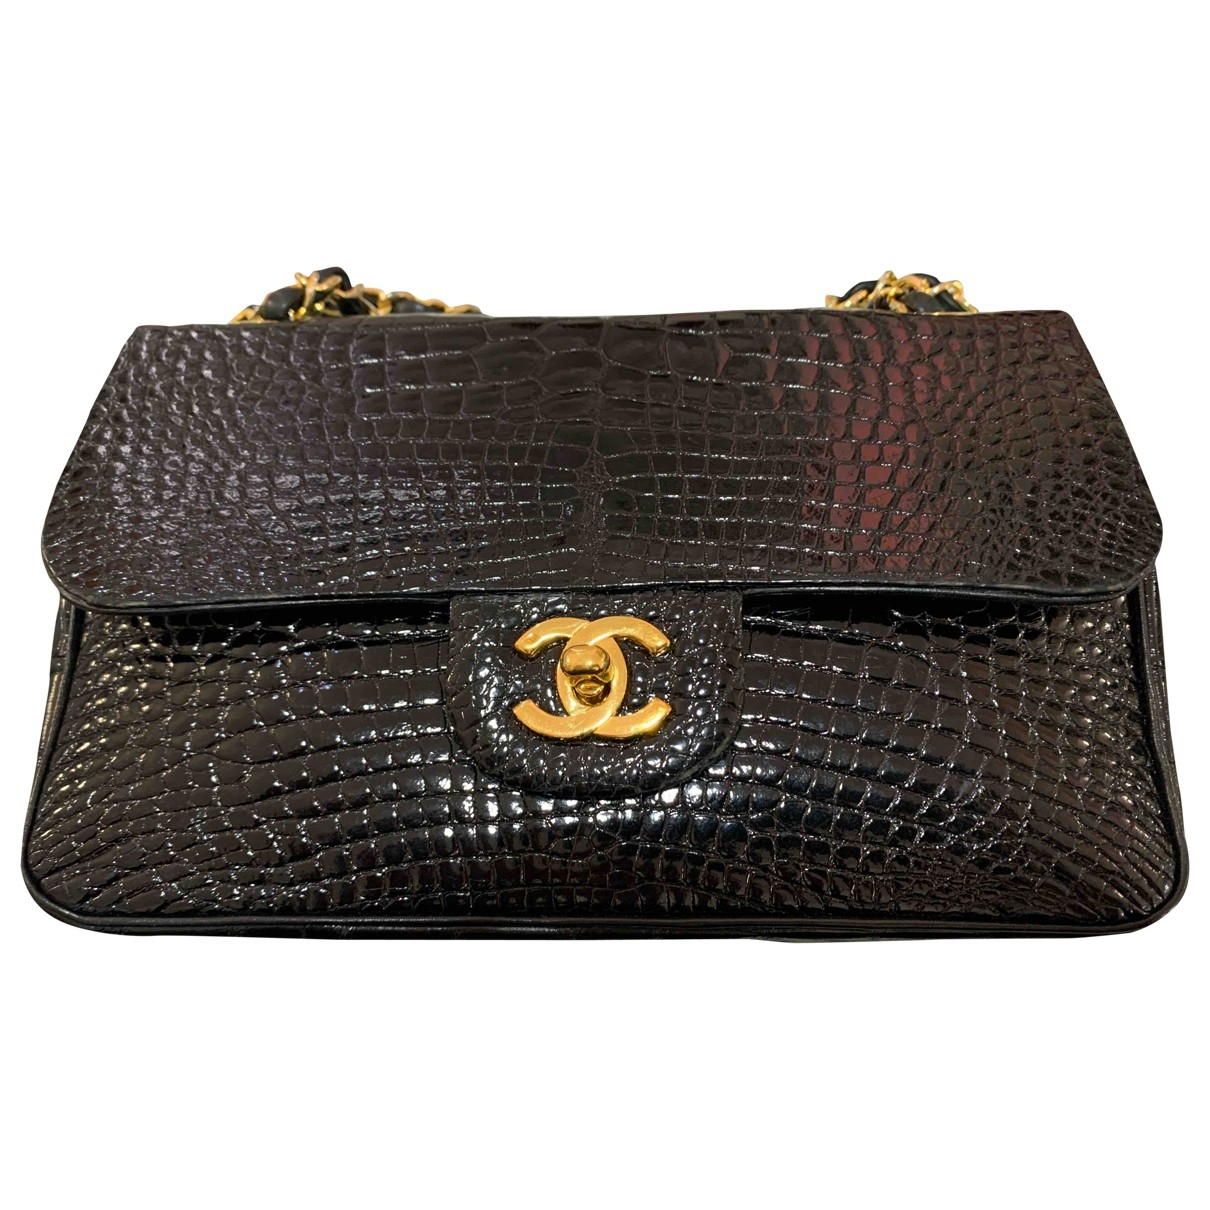 Chanel Timeless/Classique Black Alligator handbag for Women \N